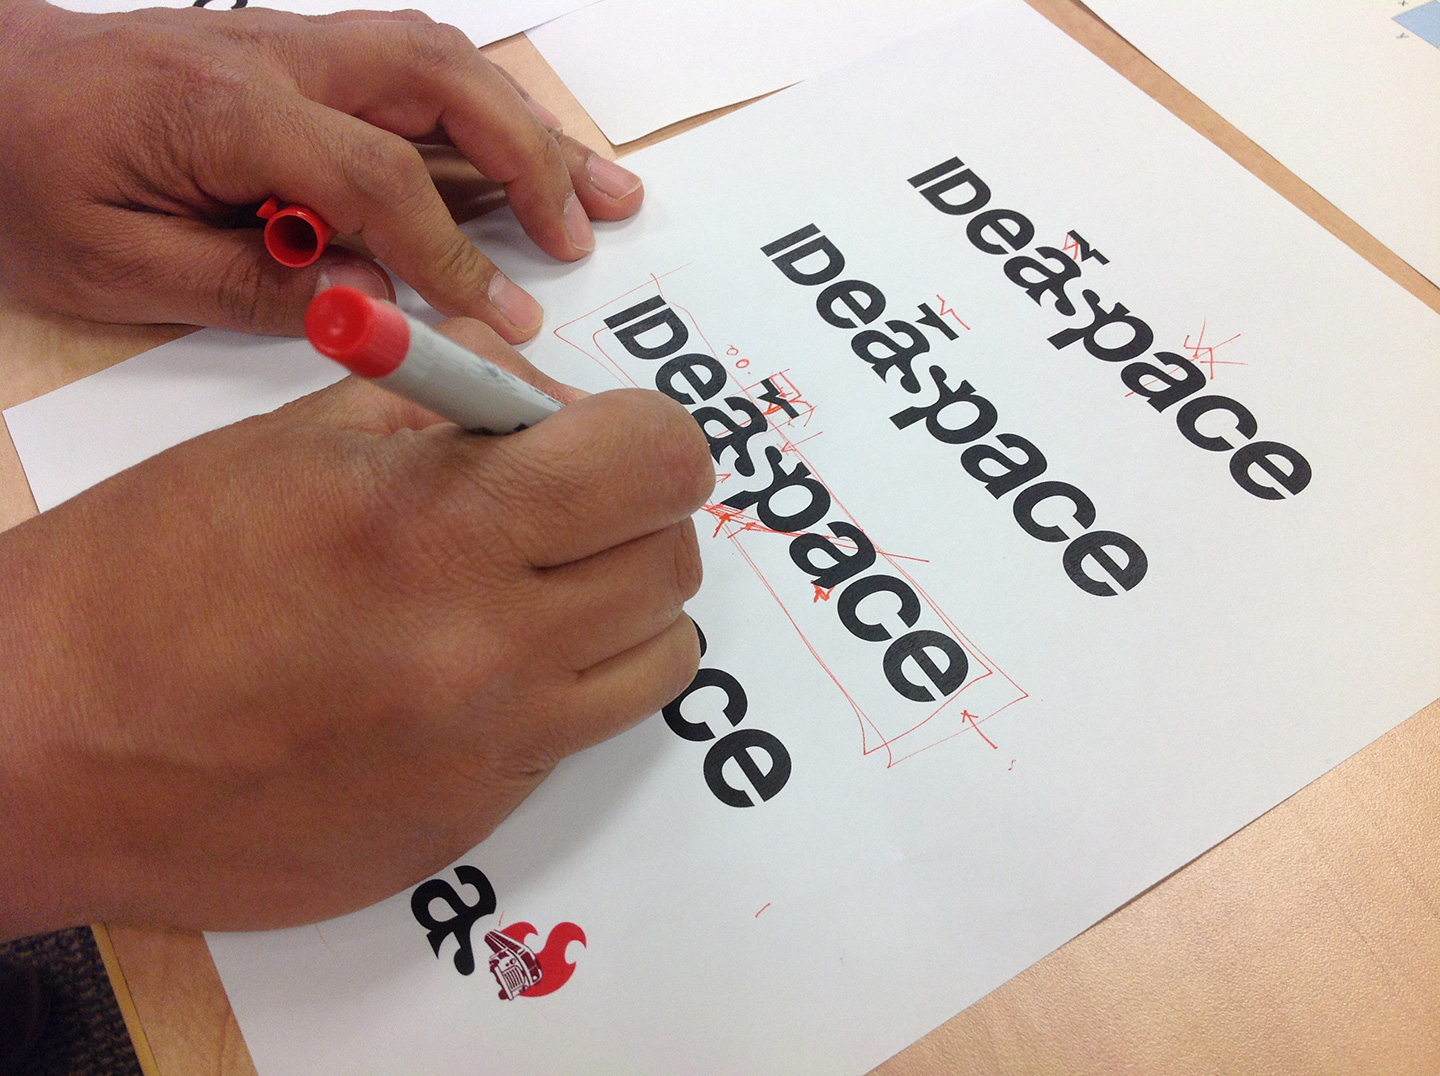 Hands marking up a page featuring IDeaspace logotypes with a red marker